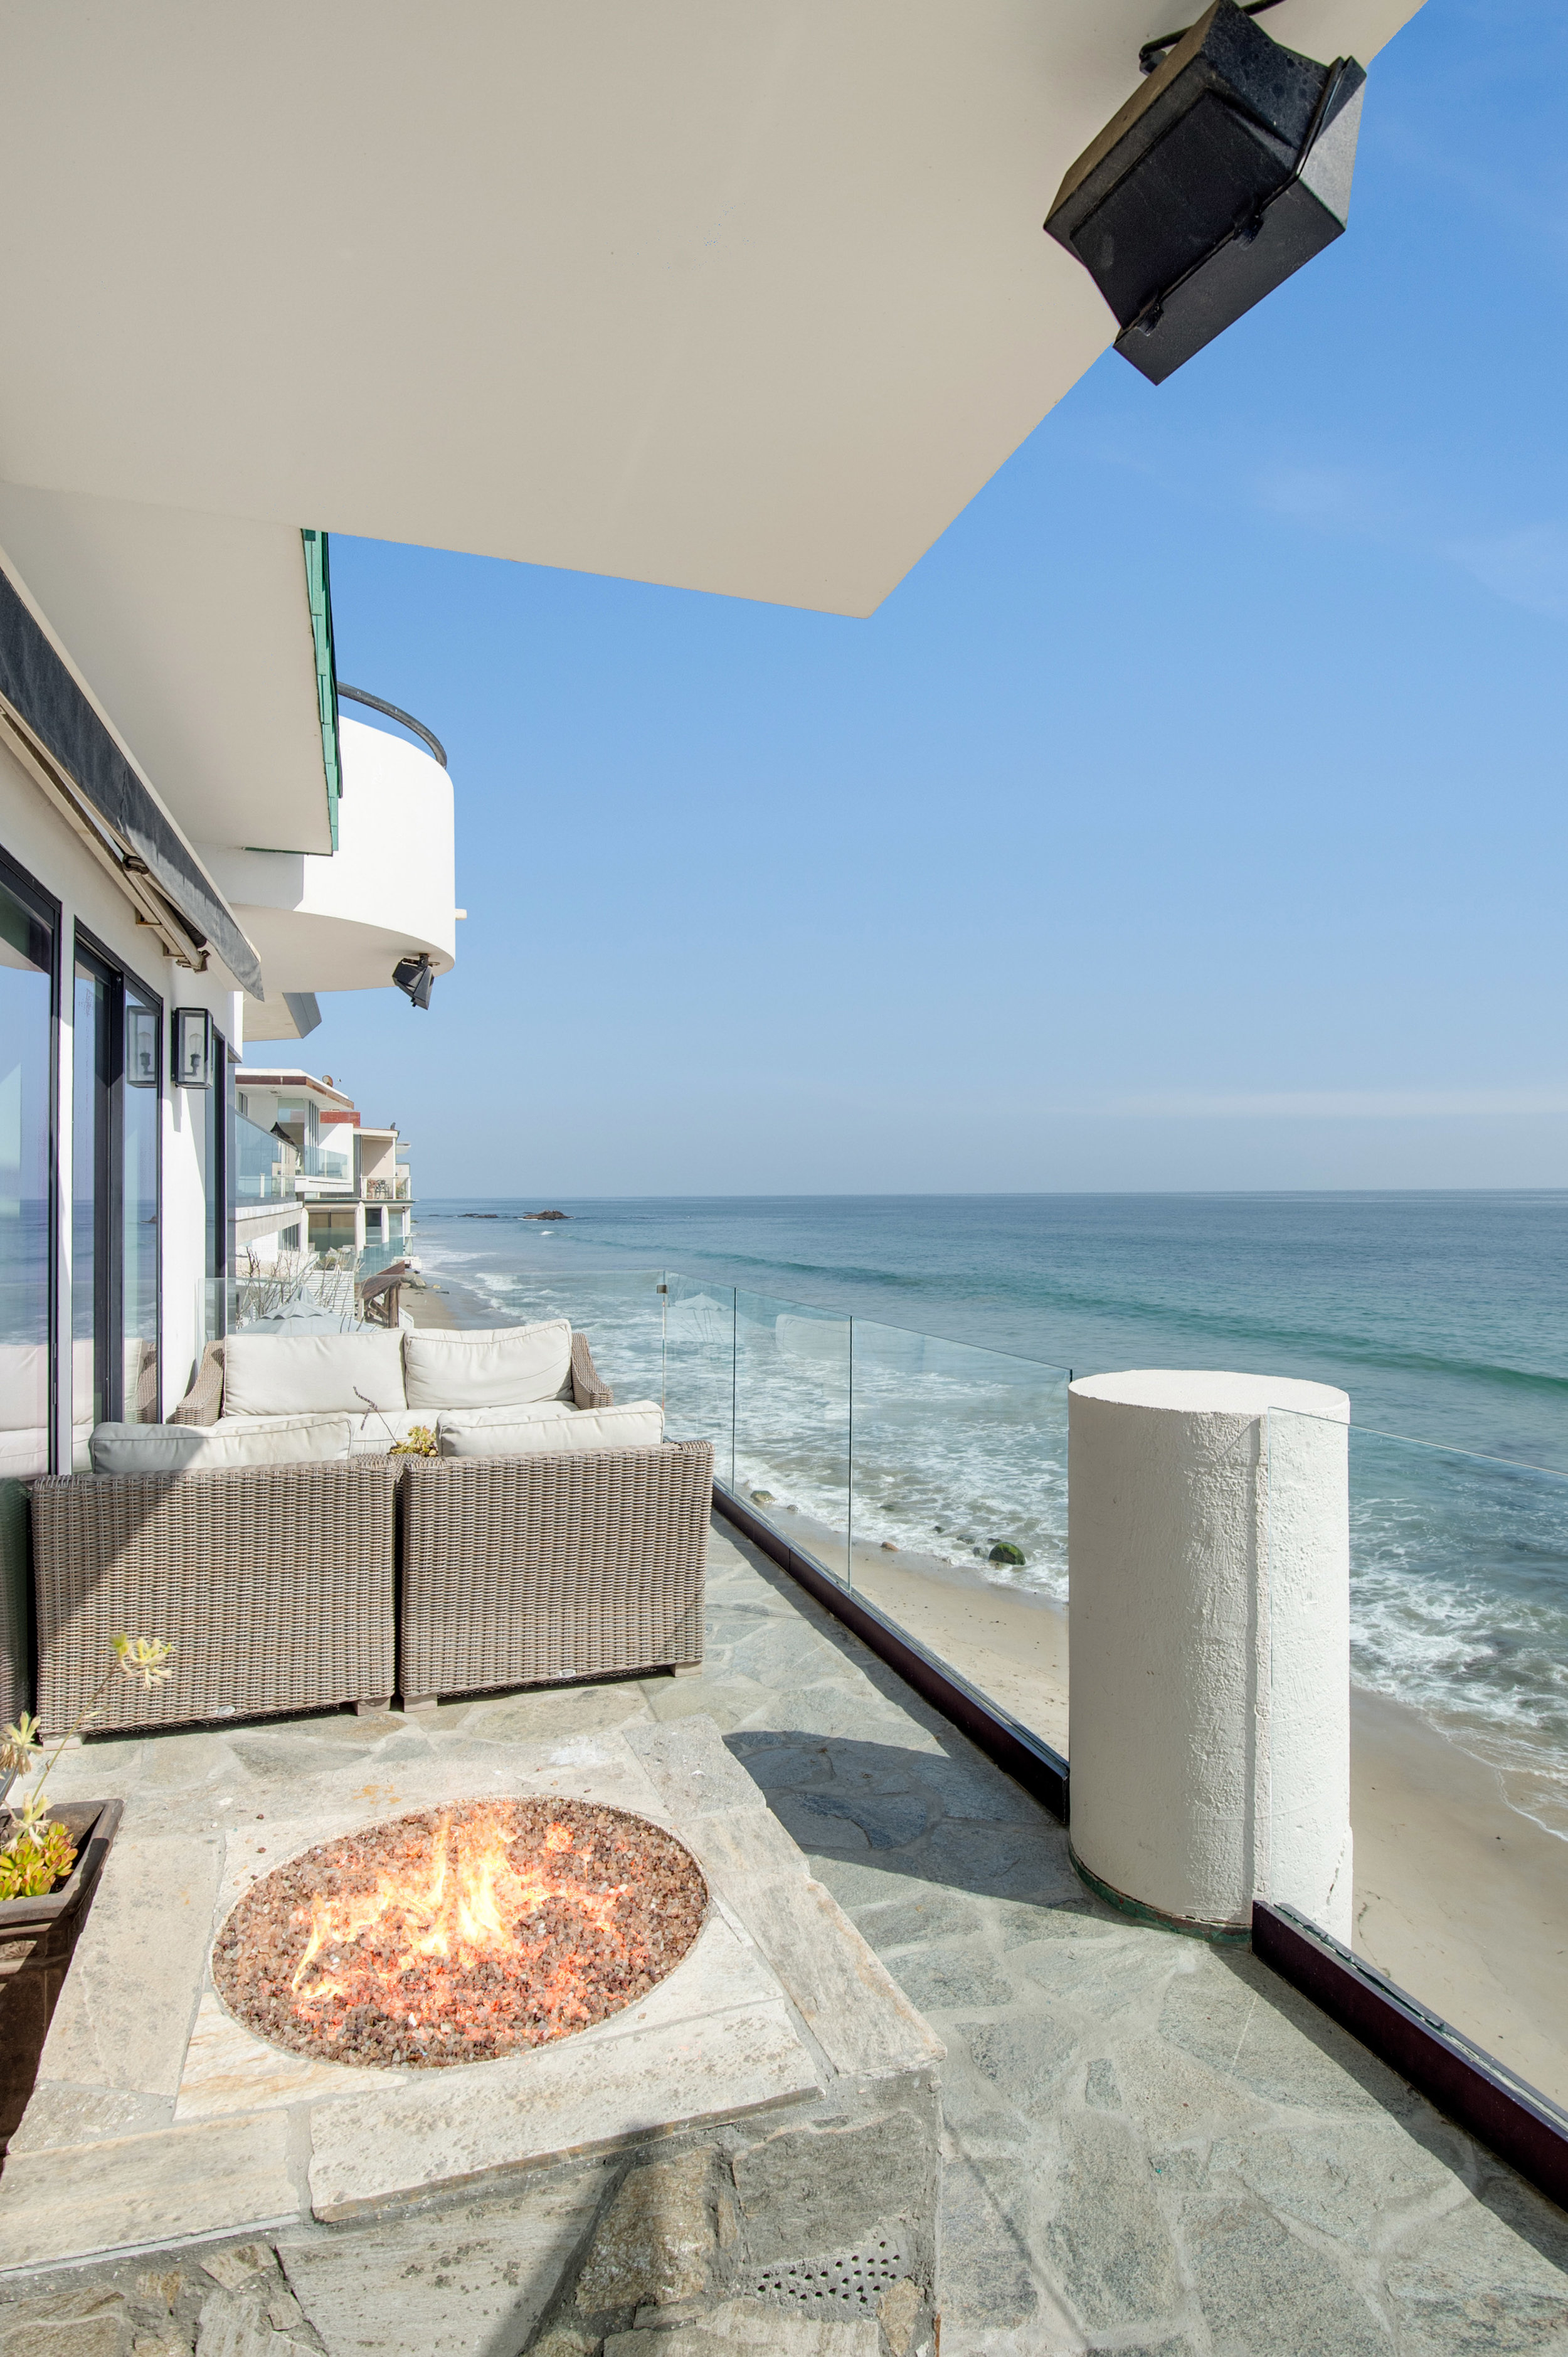 015 Deck 25252 Malibu Road For Sale Lease The Malibu Life Team Luxury Real Estate.jpg